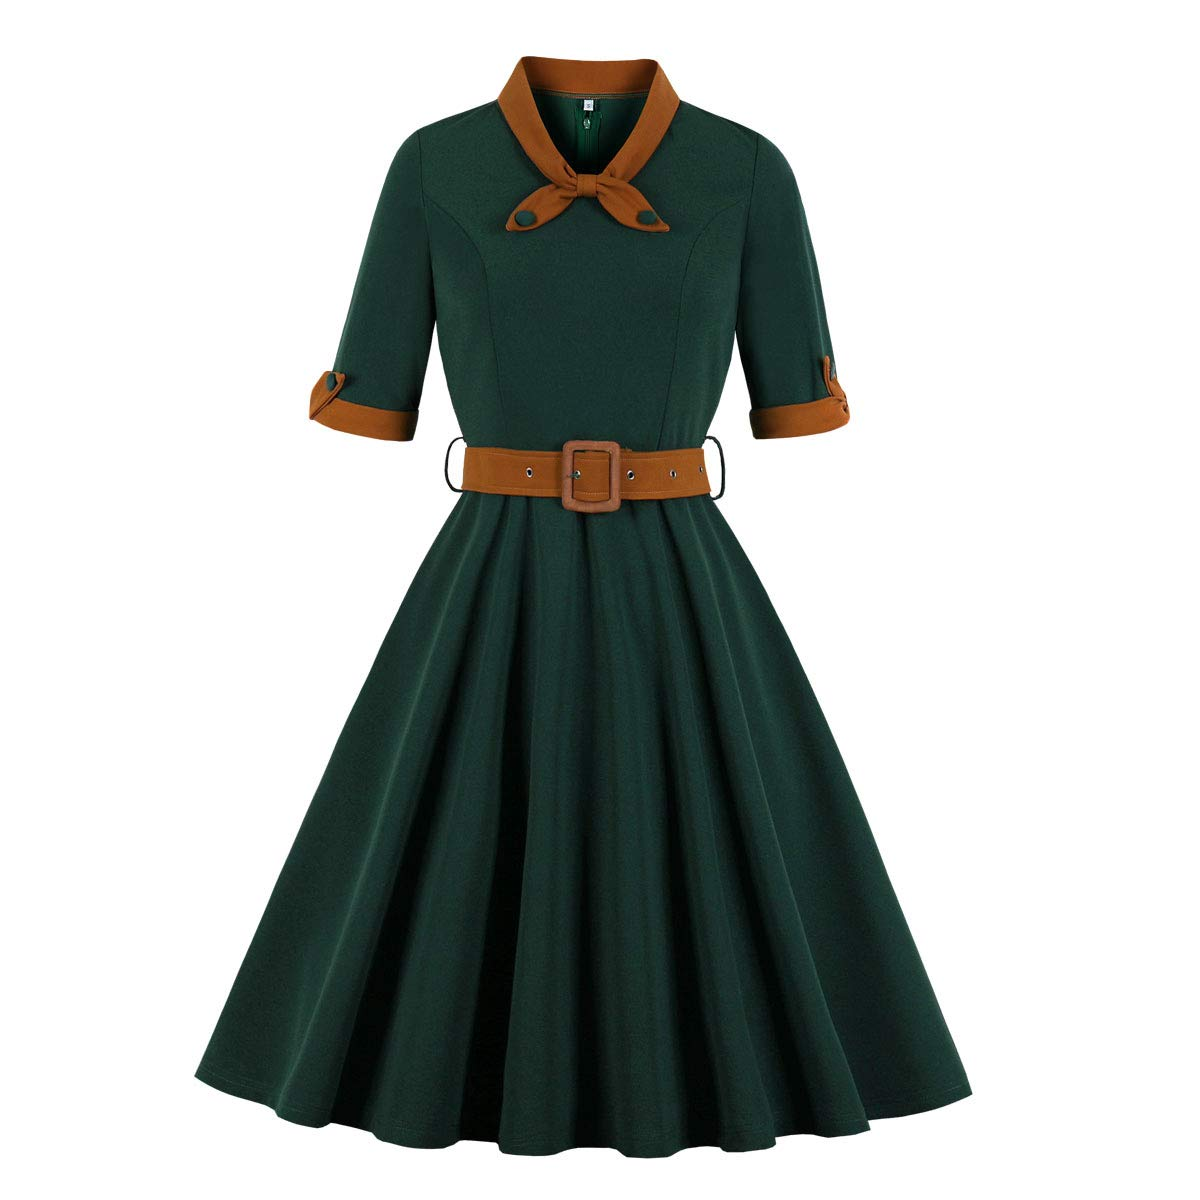 Swing Dance Clothing You Can Dance In Wellwits Womens 1/2 Half Sleeves Sailor Tie Neck 1940s Retro Vintage Dress $24.98 AT vintagedancer.com